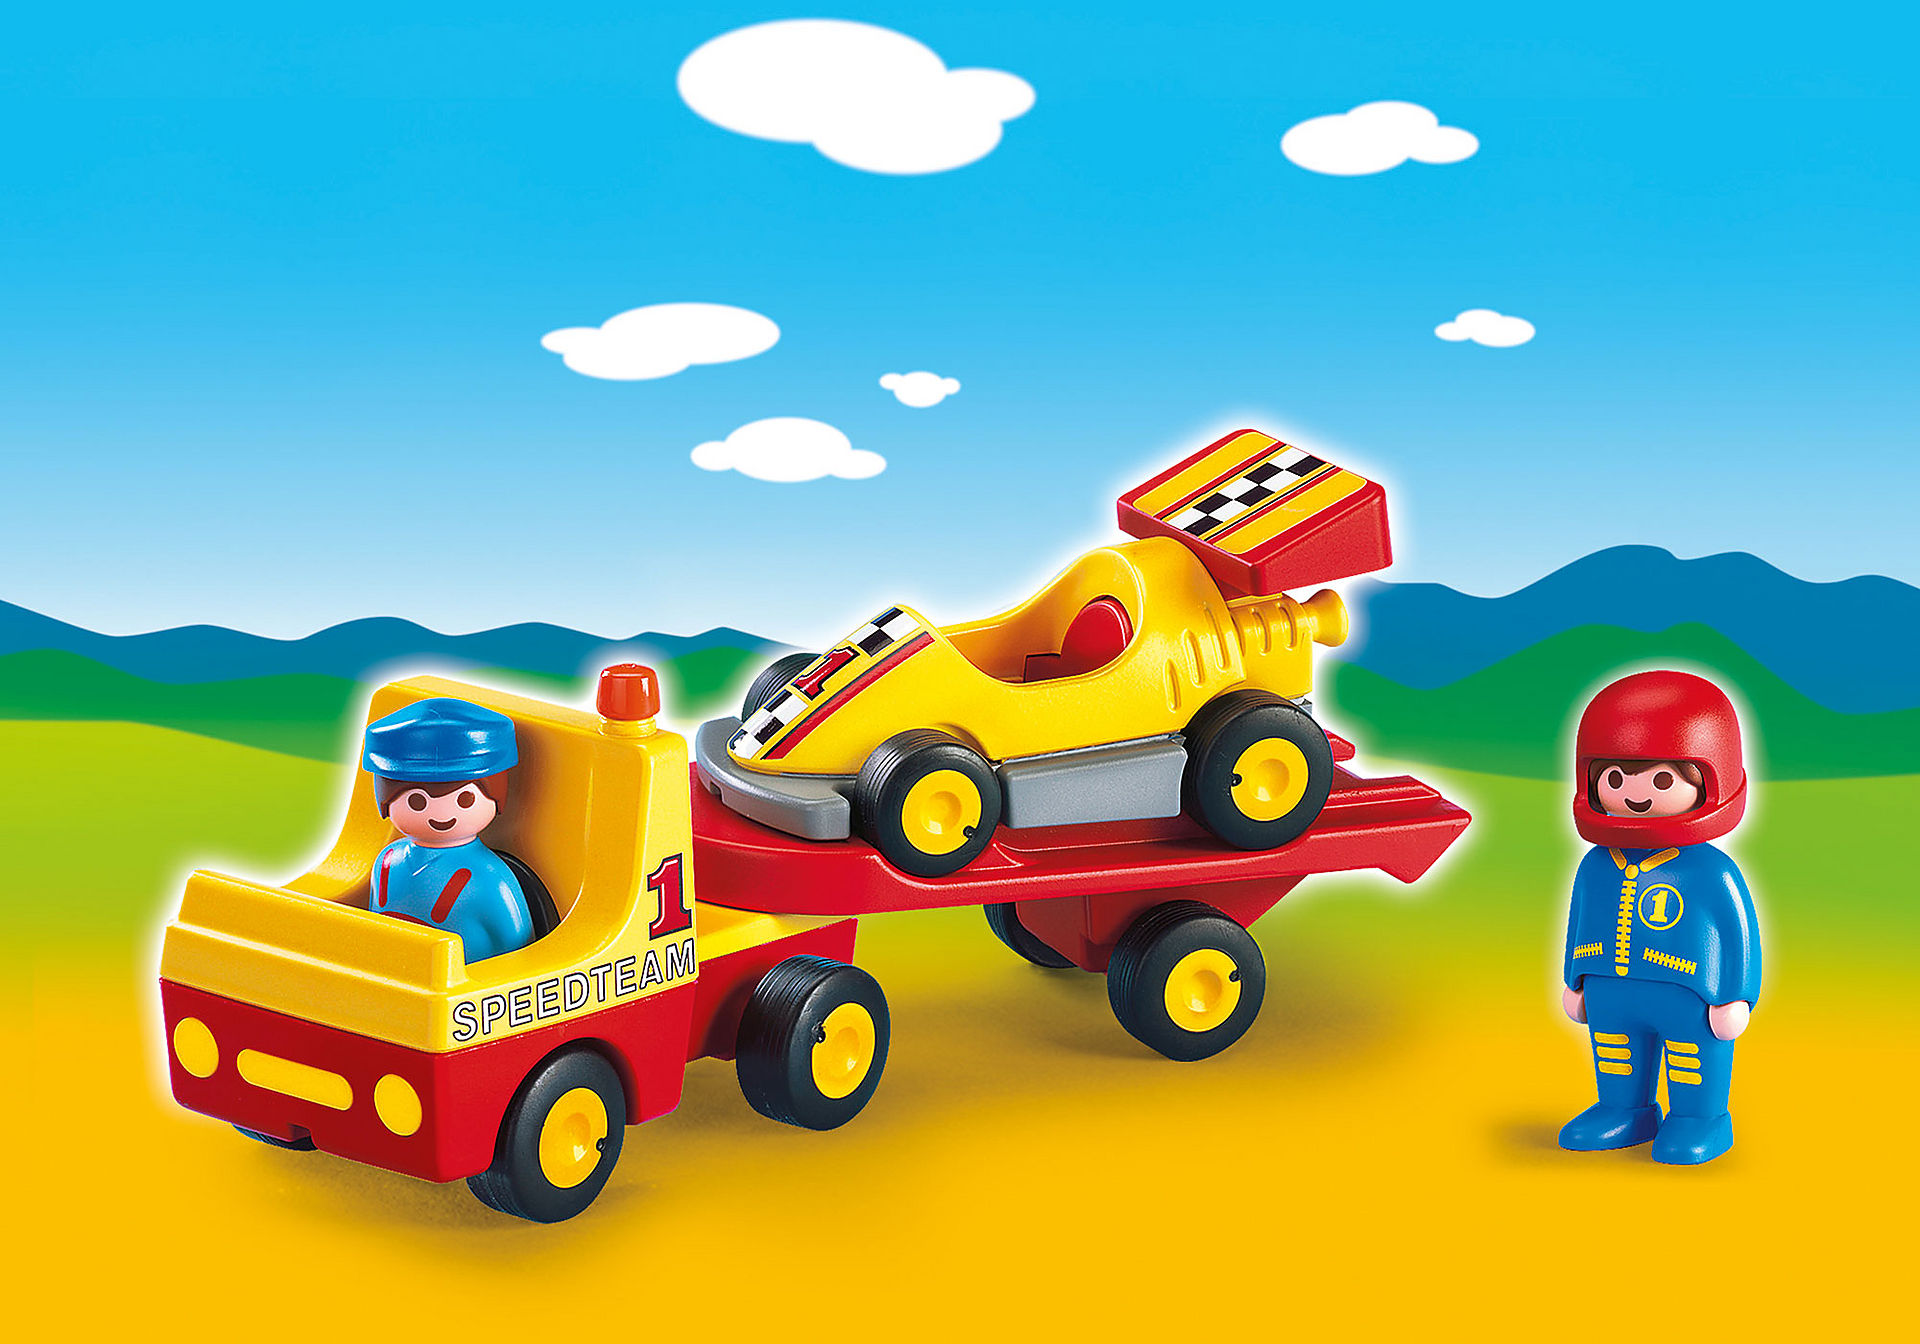 http://media.playmobil.com/i/playmobil/6761_product_detail/Voiture de course avec camion de transport